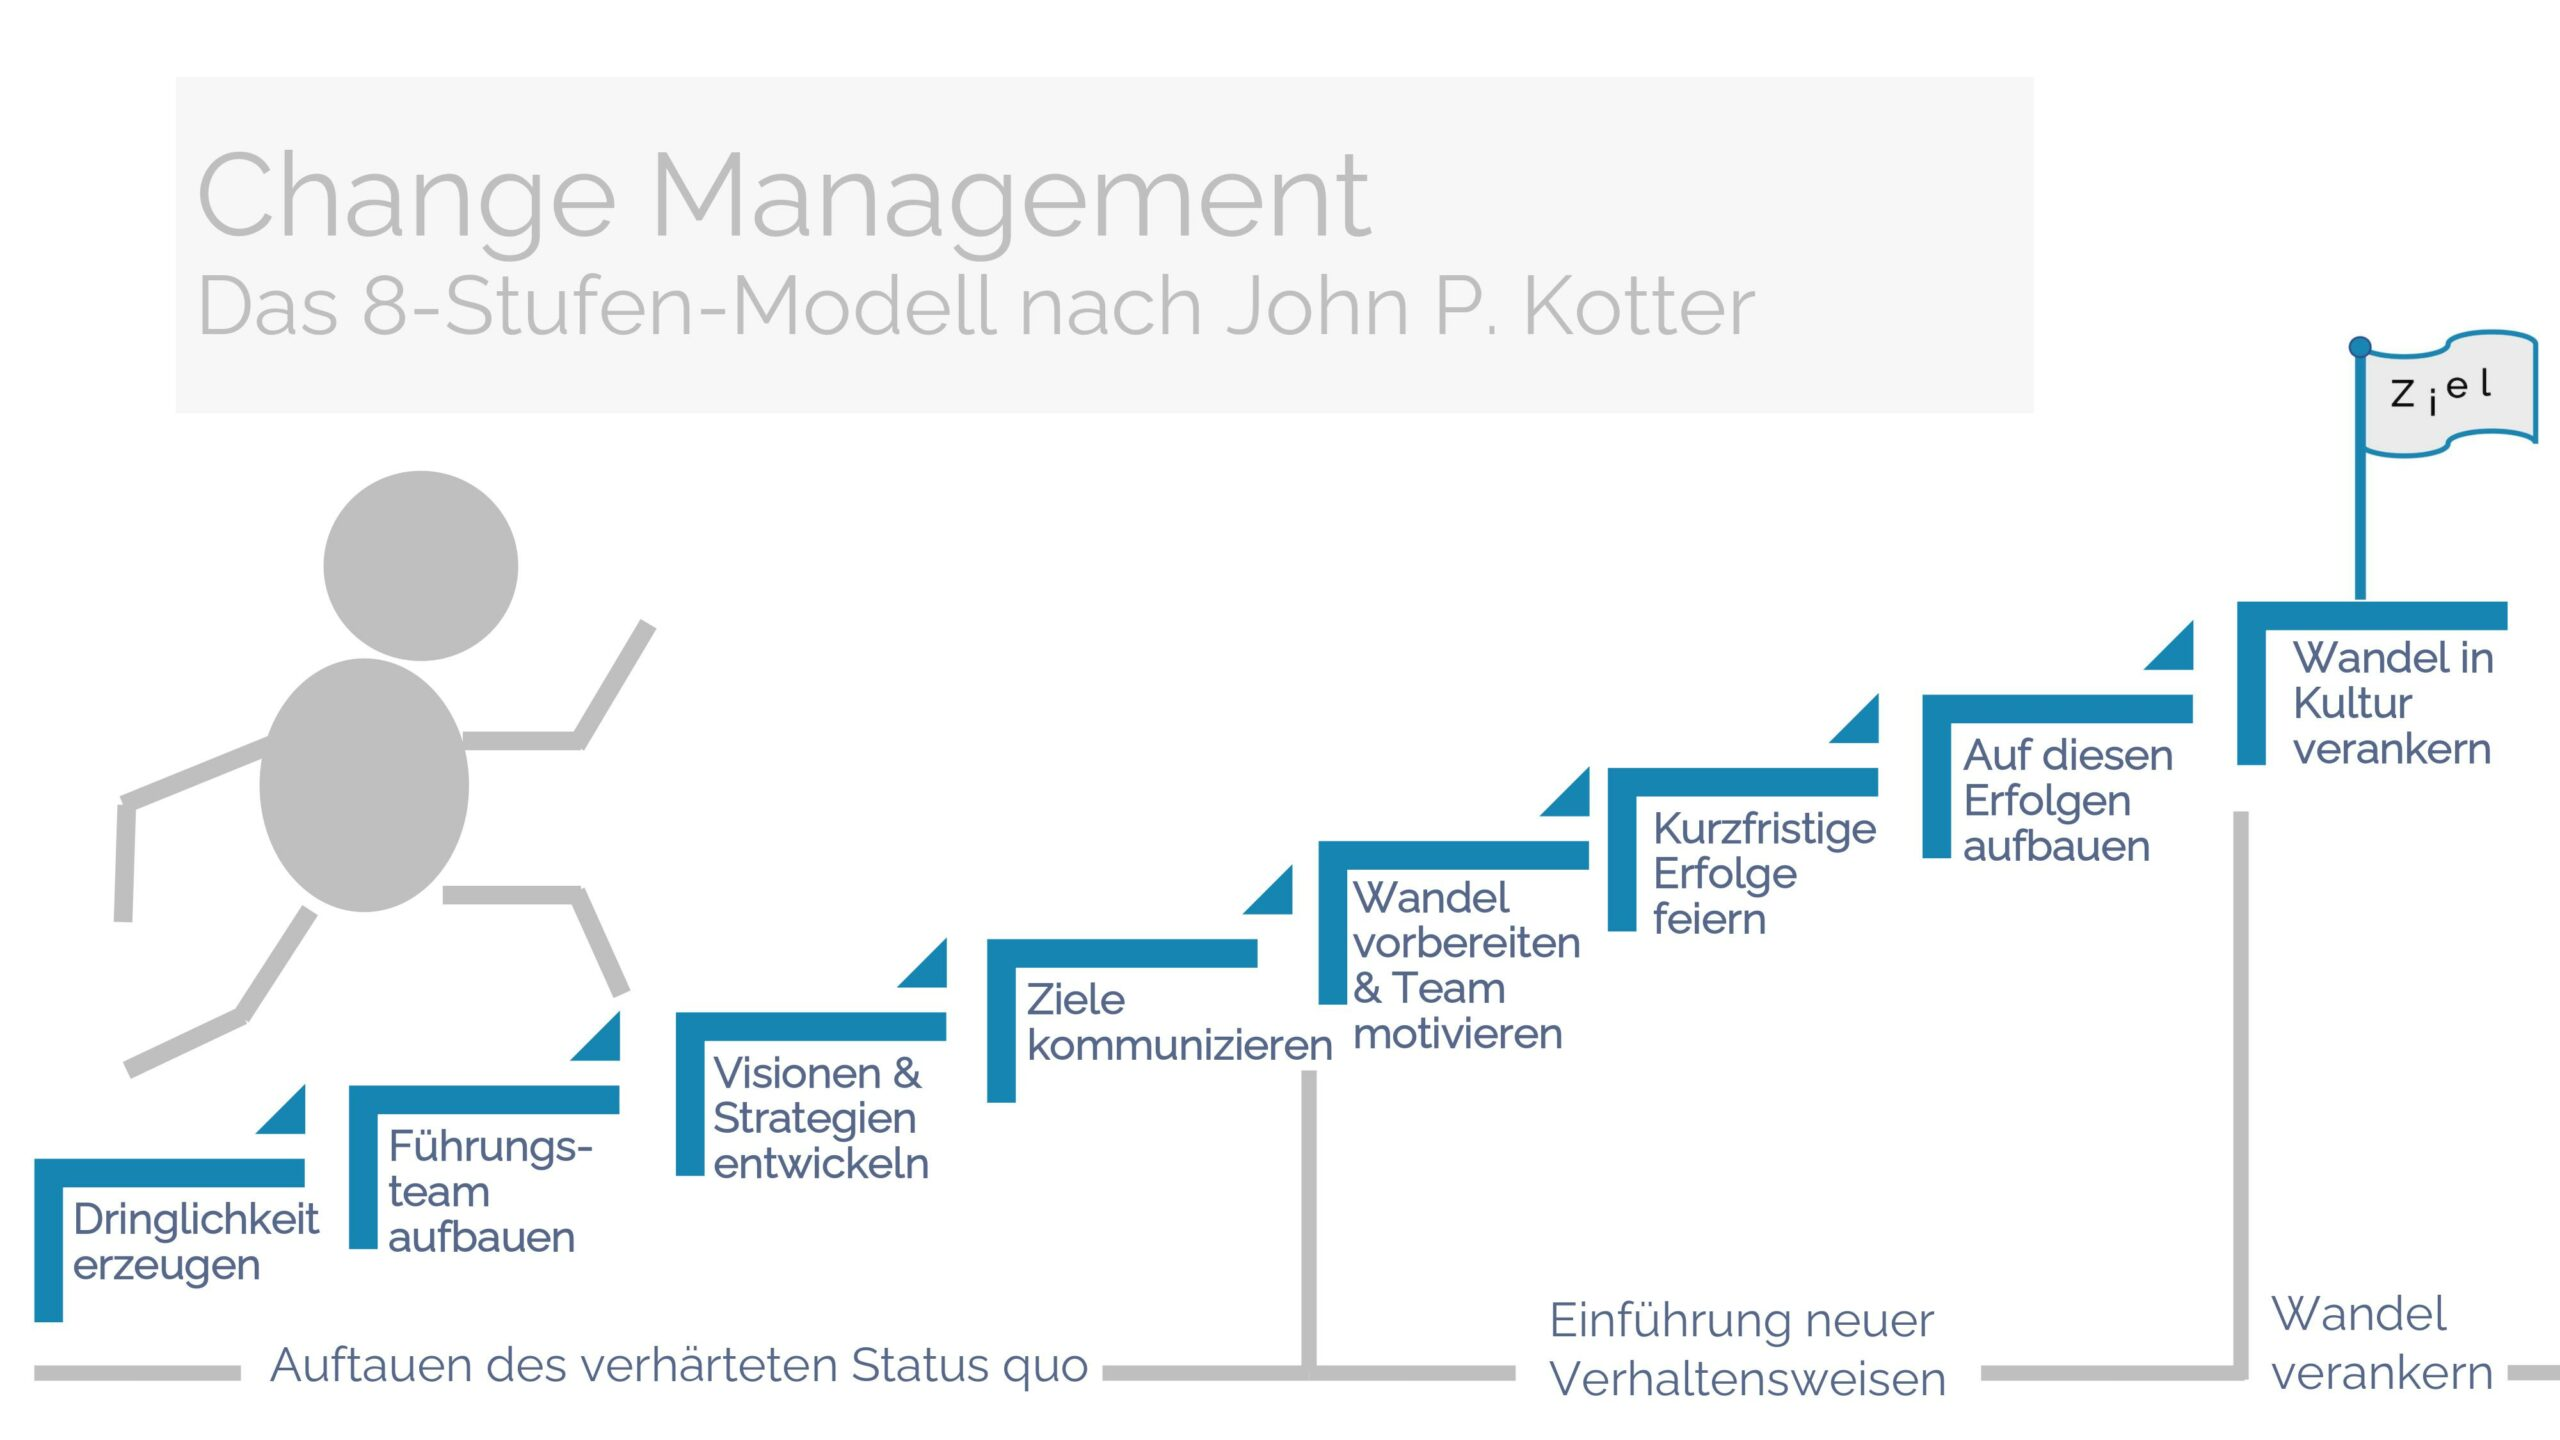 Change Management nach John P. Kotter